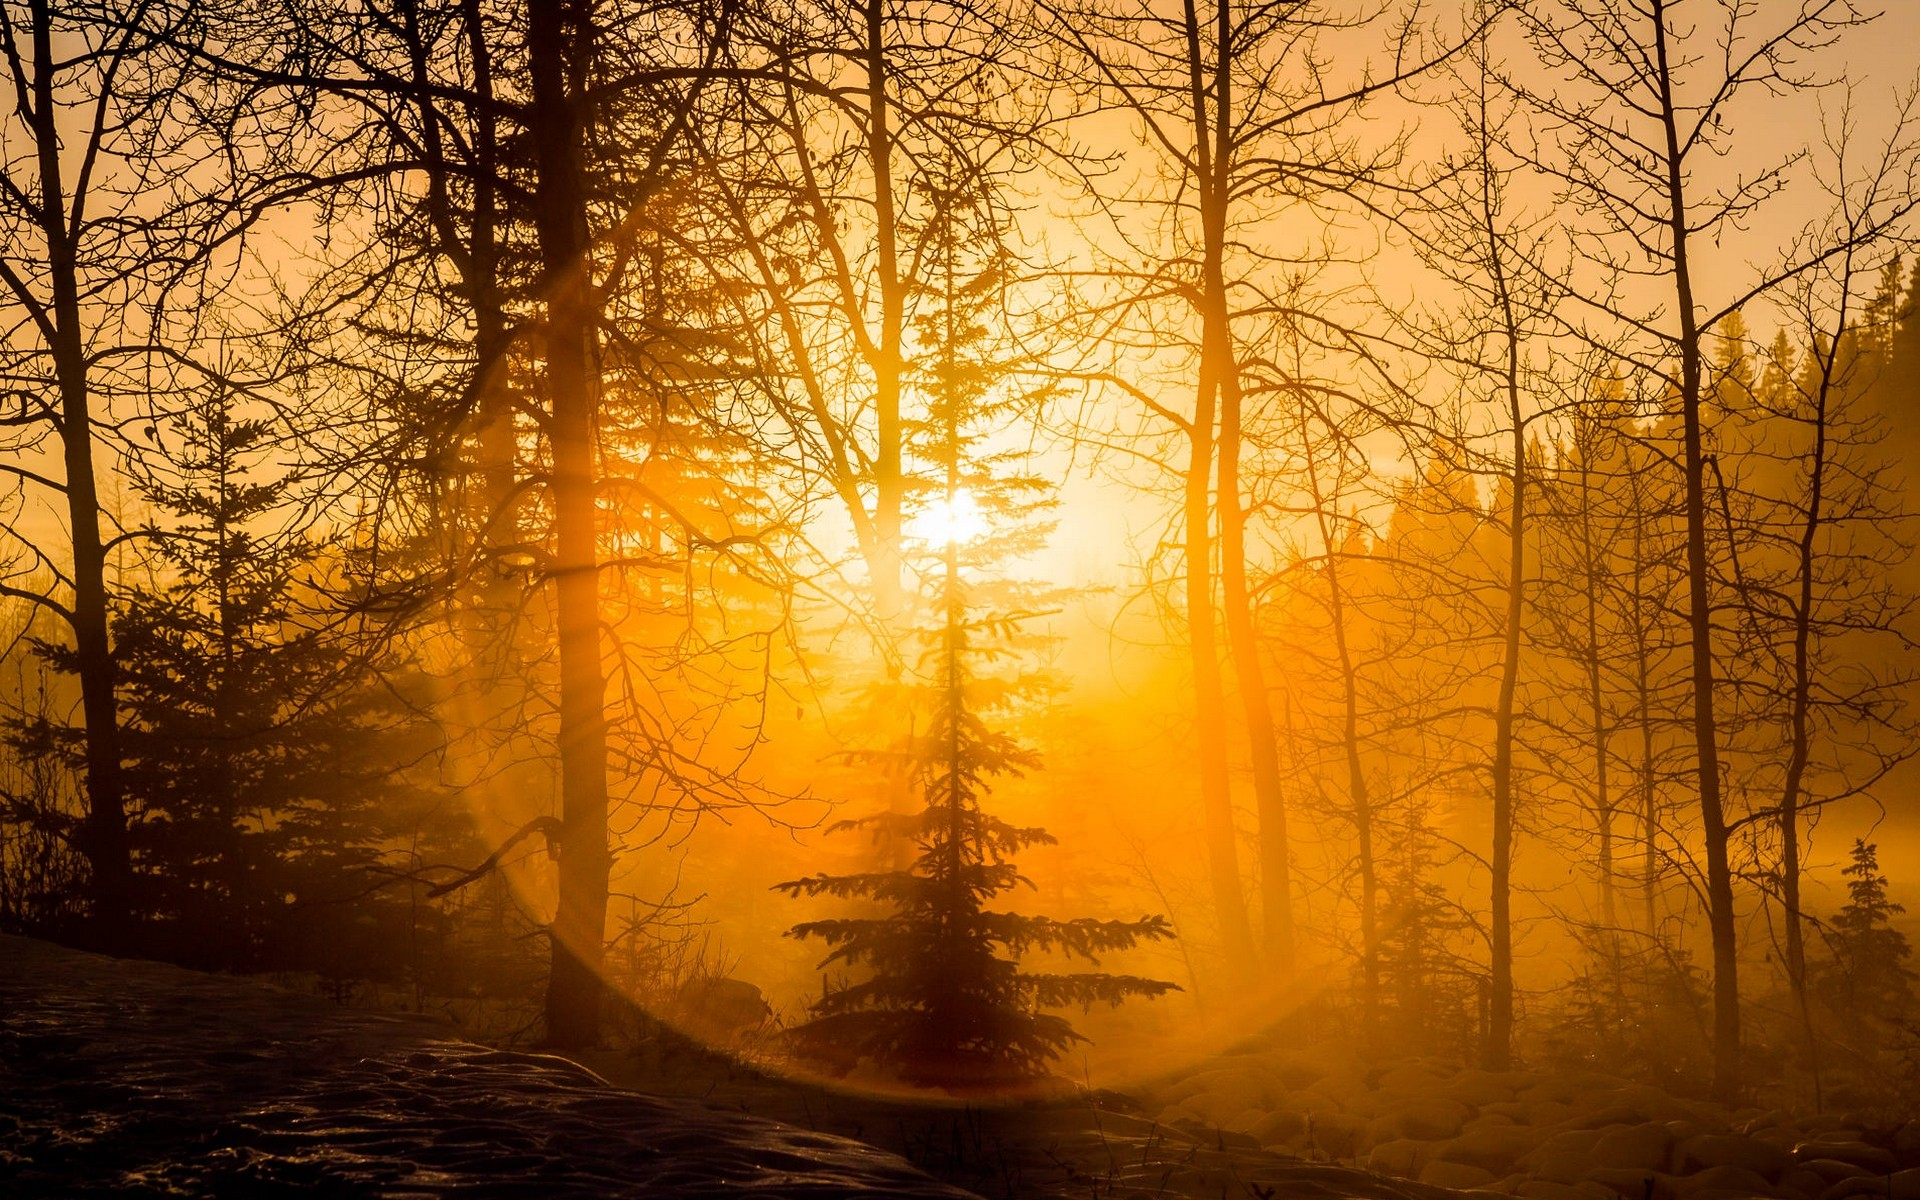 Wallpaper Nature Fall Photography Nature Landscape Forest Sunset Mist